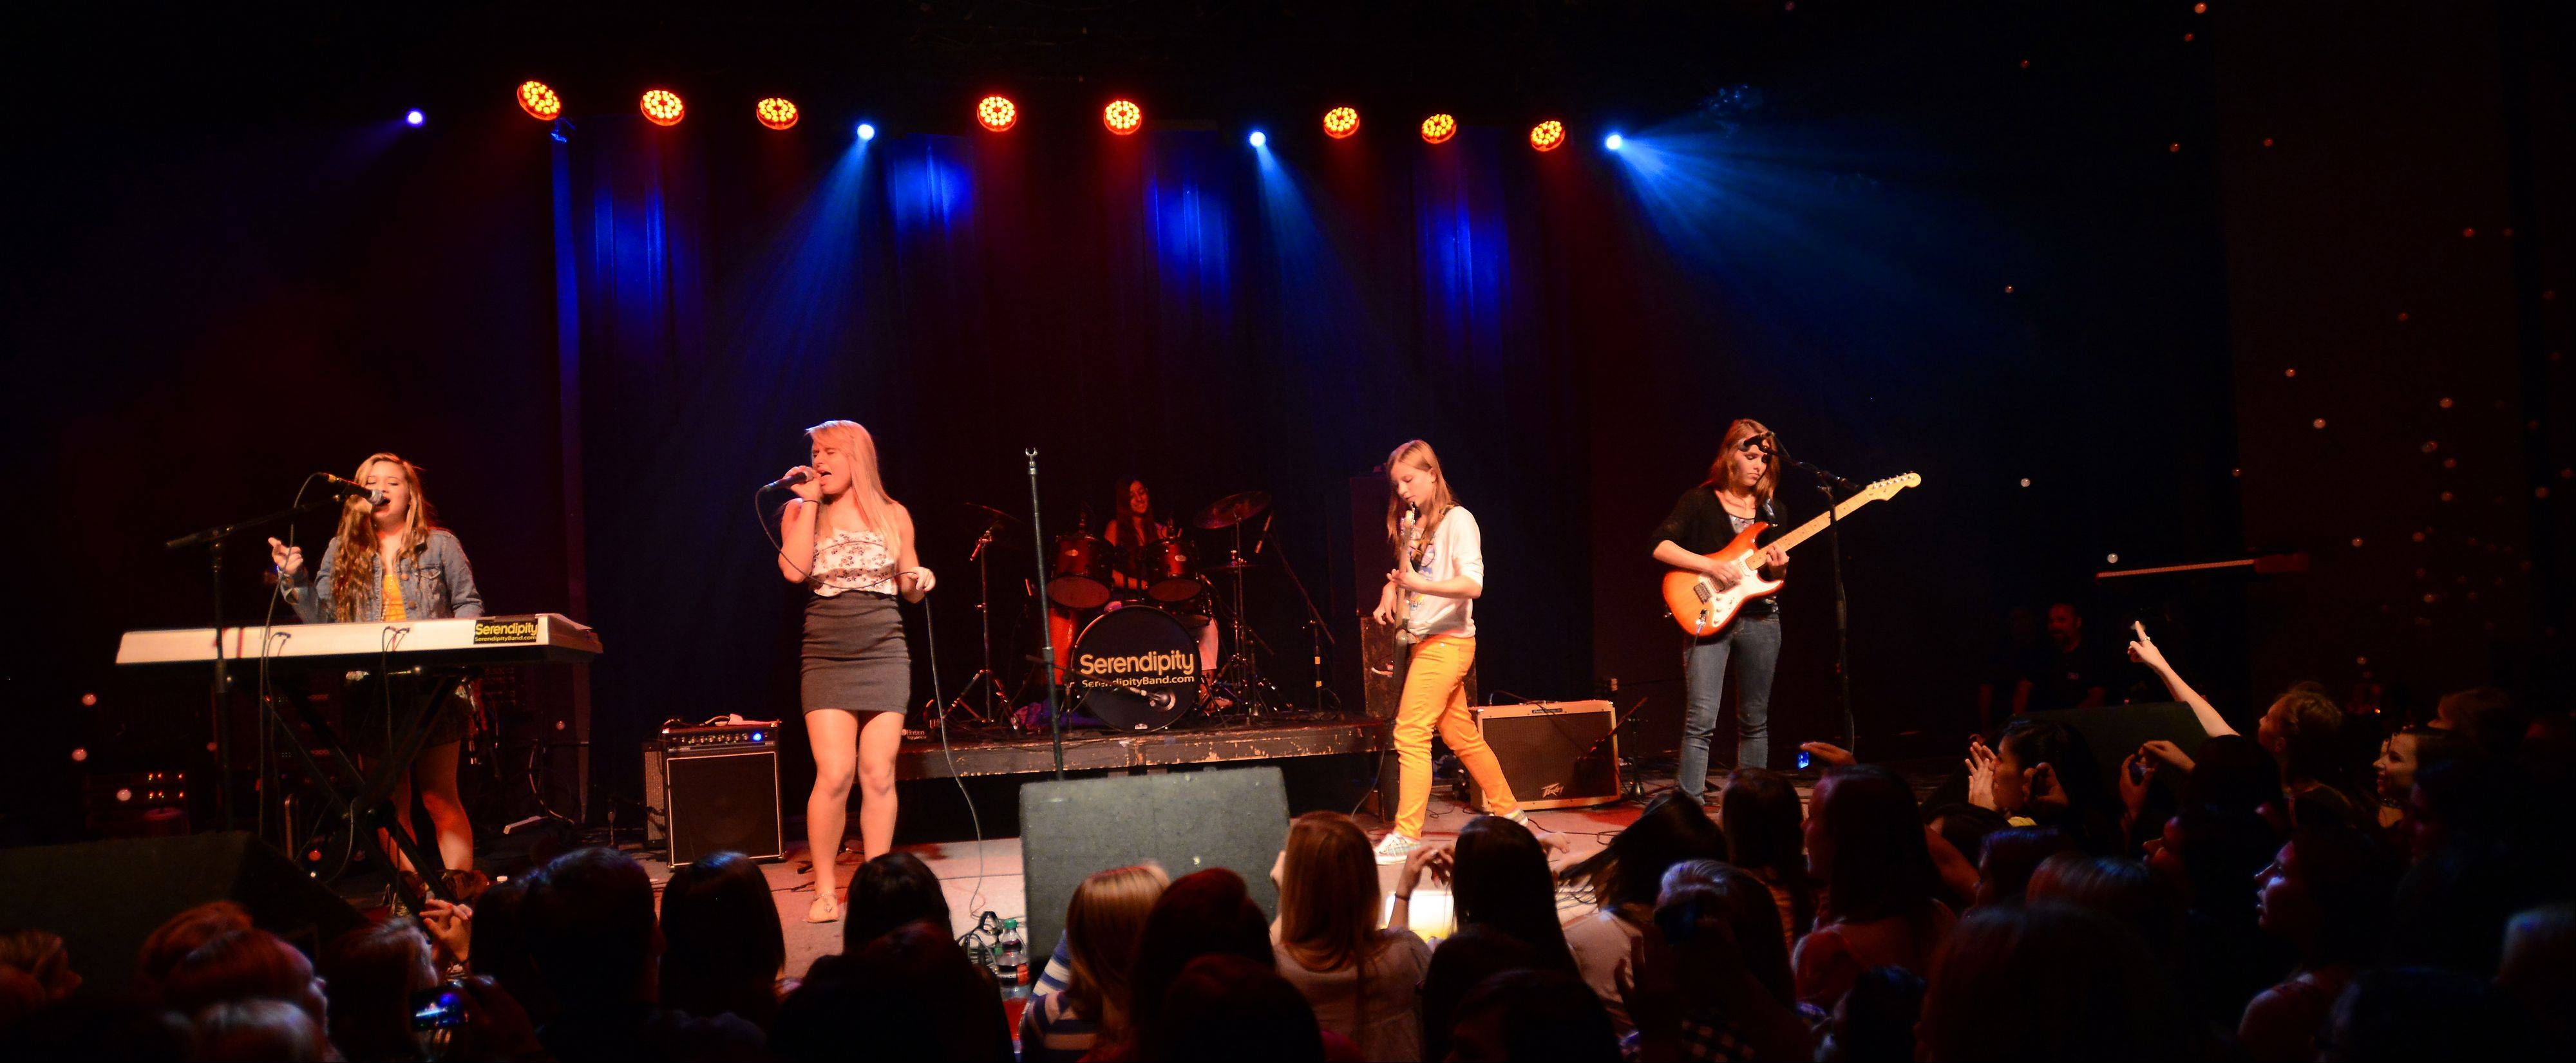 Serendipity band members Josie Treffy, 15, of South Elgin, Haley Blomquist, 15, of Elk Grove Village, Daniella Ballarino, 16, of Mount Prospect, and Anneliese Schulz, 15, of Elk Grove Village, with Lizzy Petitt, 15, of Arlington Heights play for their fans at Durty Nellie's in Palatine.